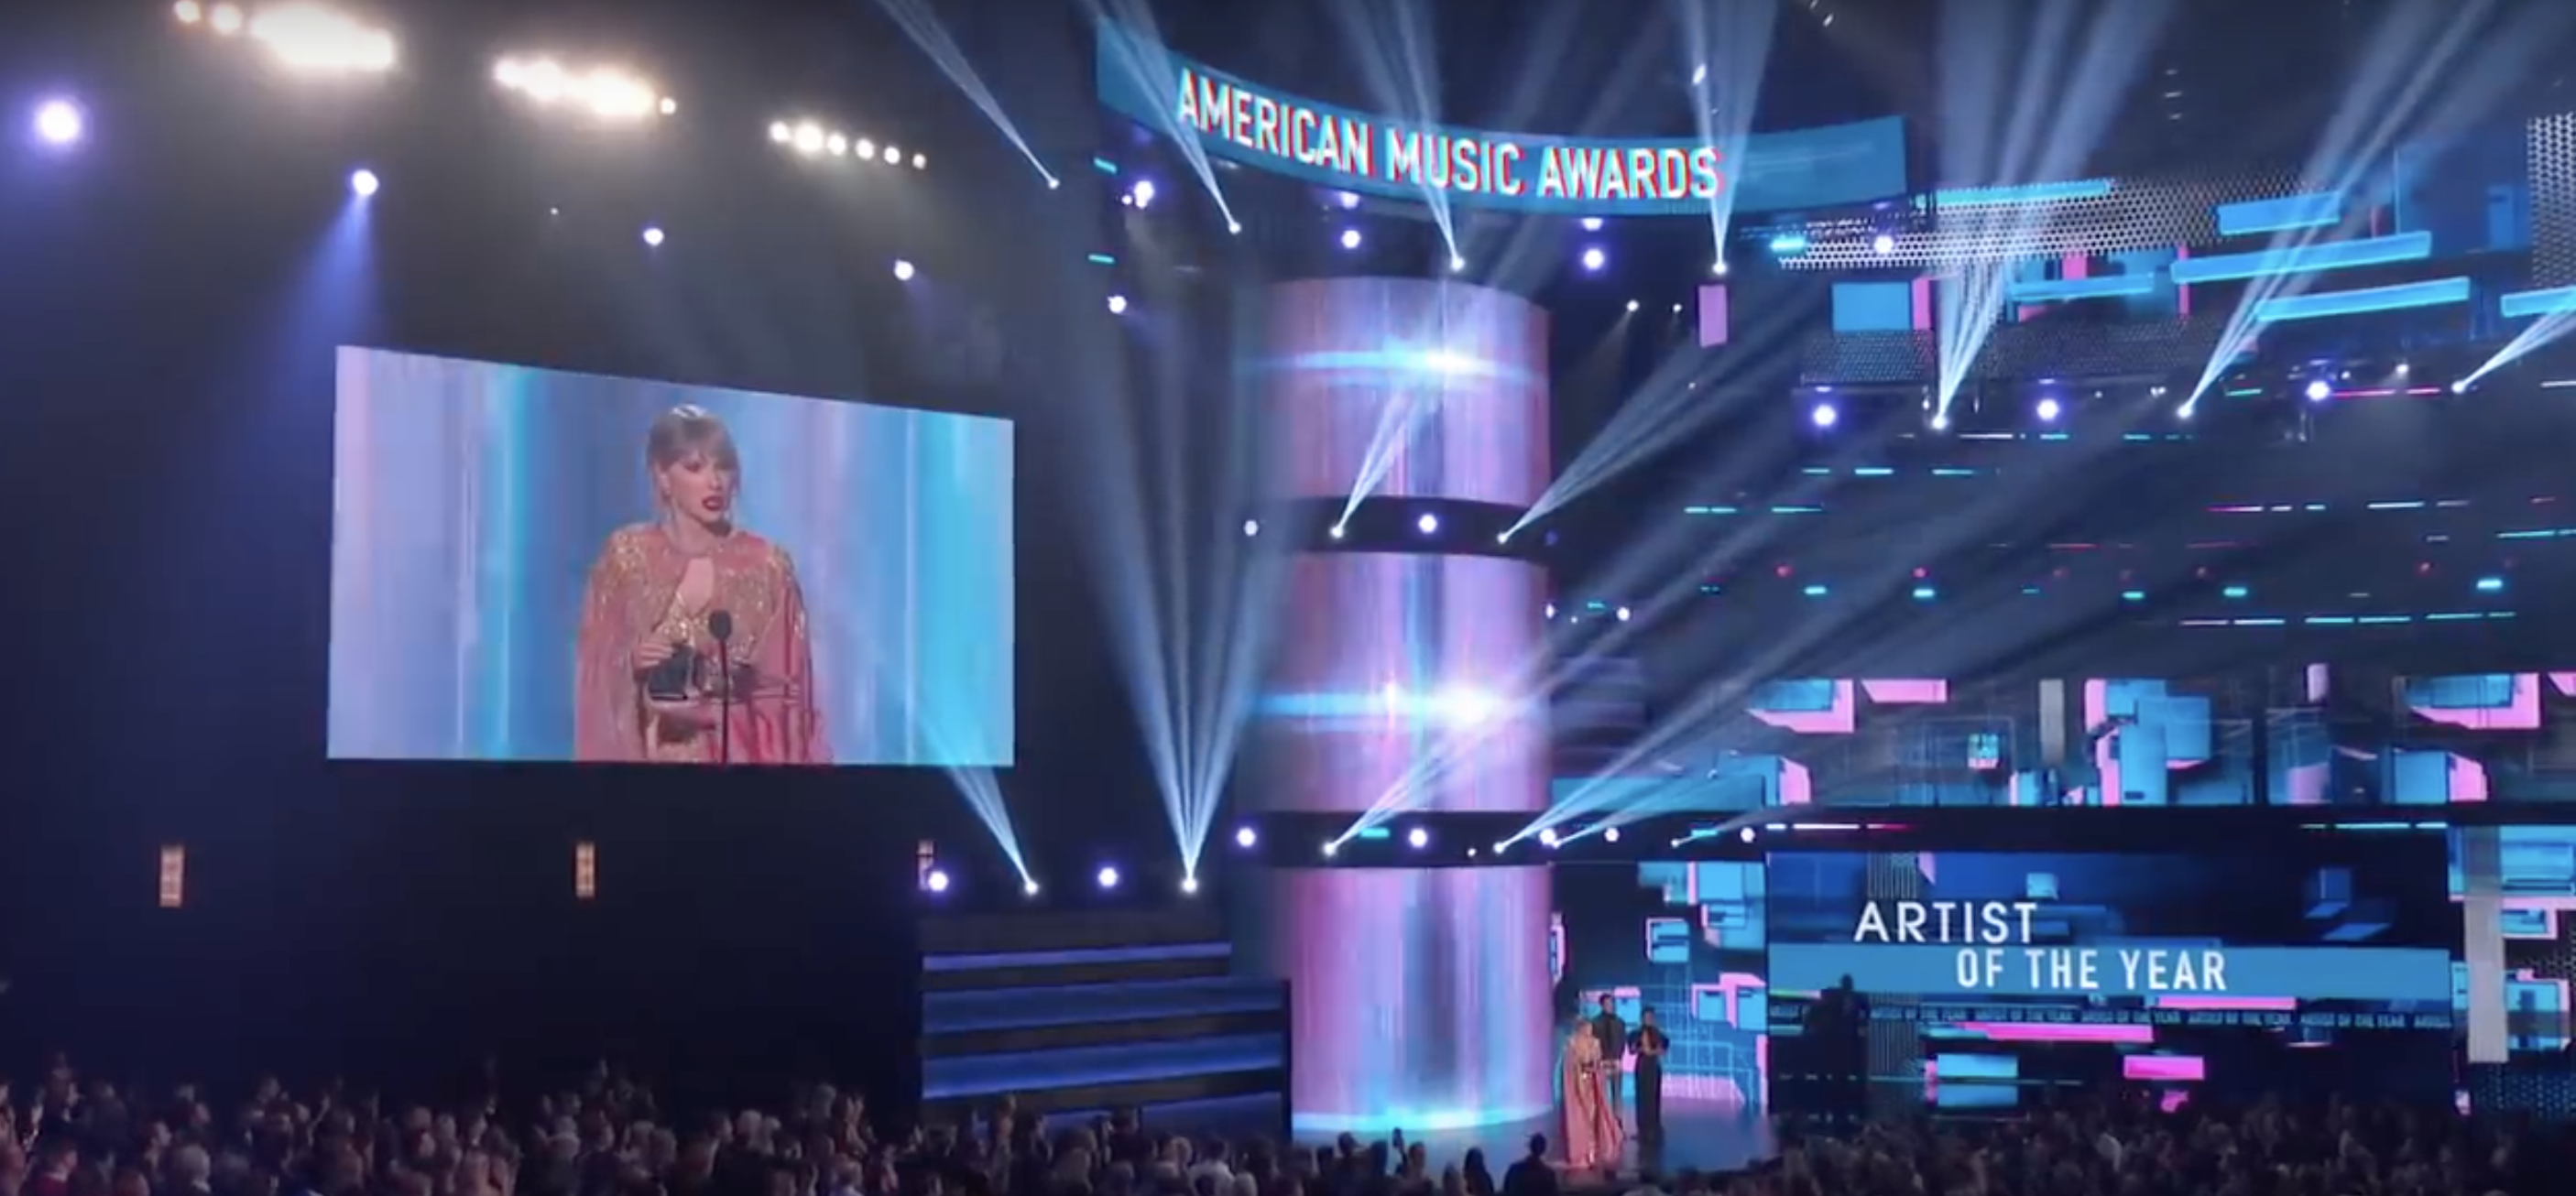 Taylor Swift - AMAS - American Music Awards - American Music Awards 2019 -